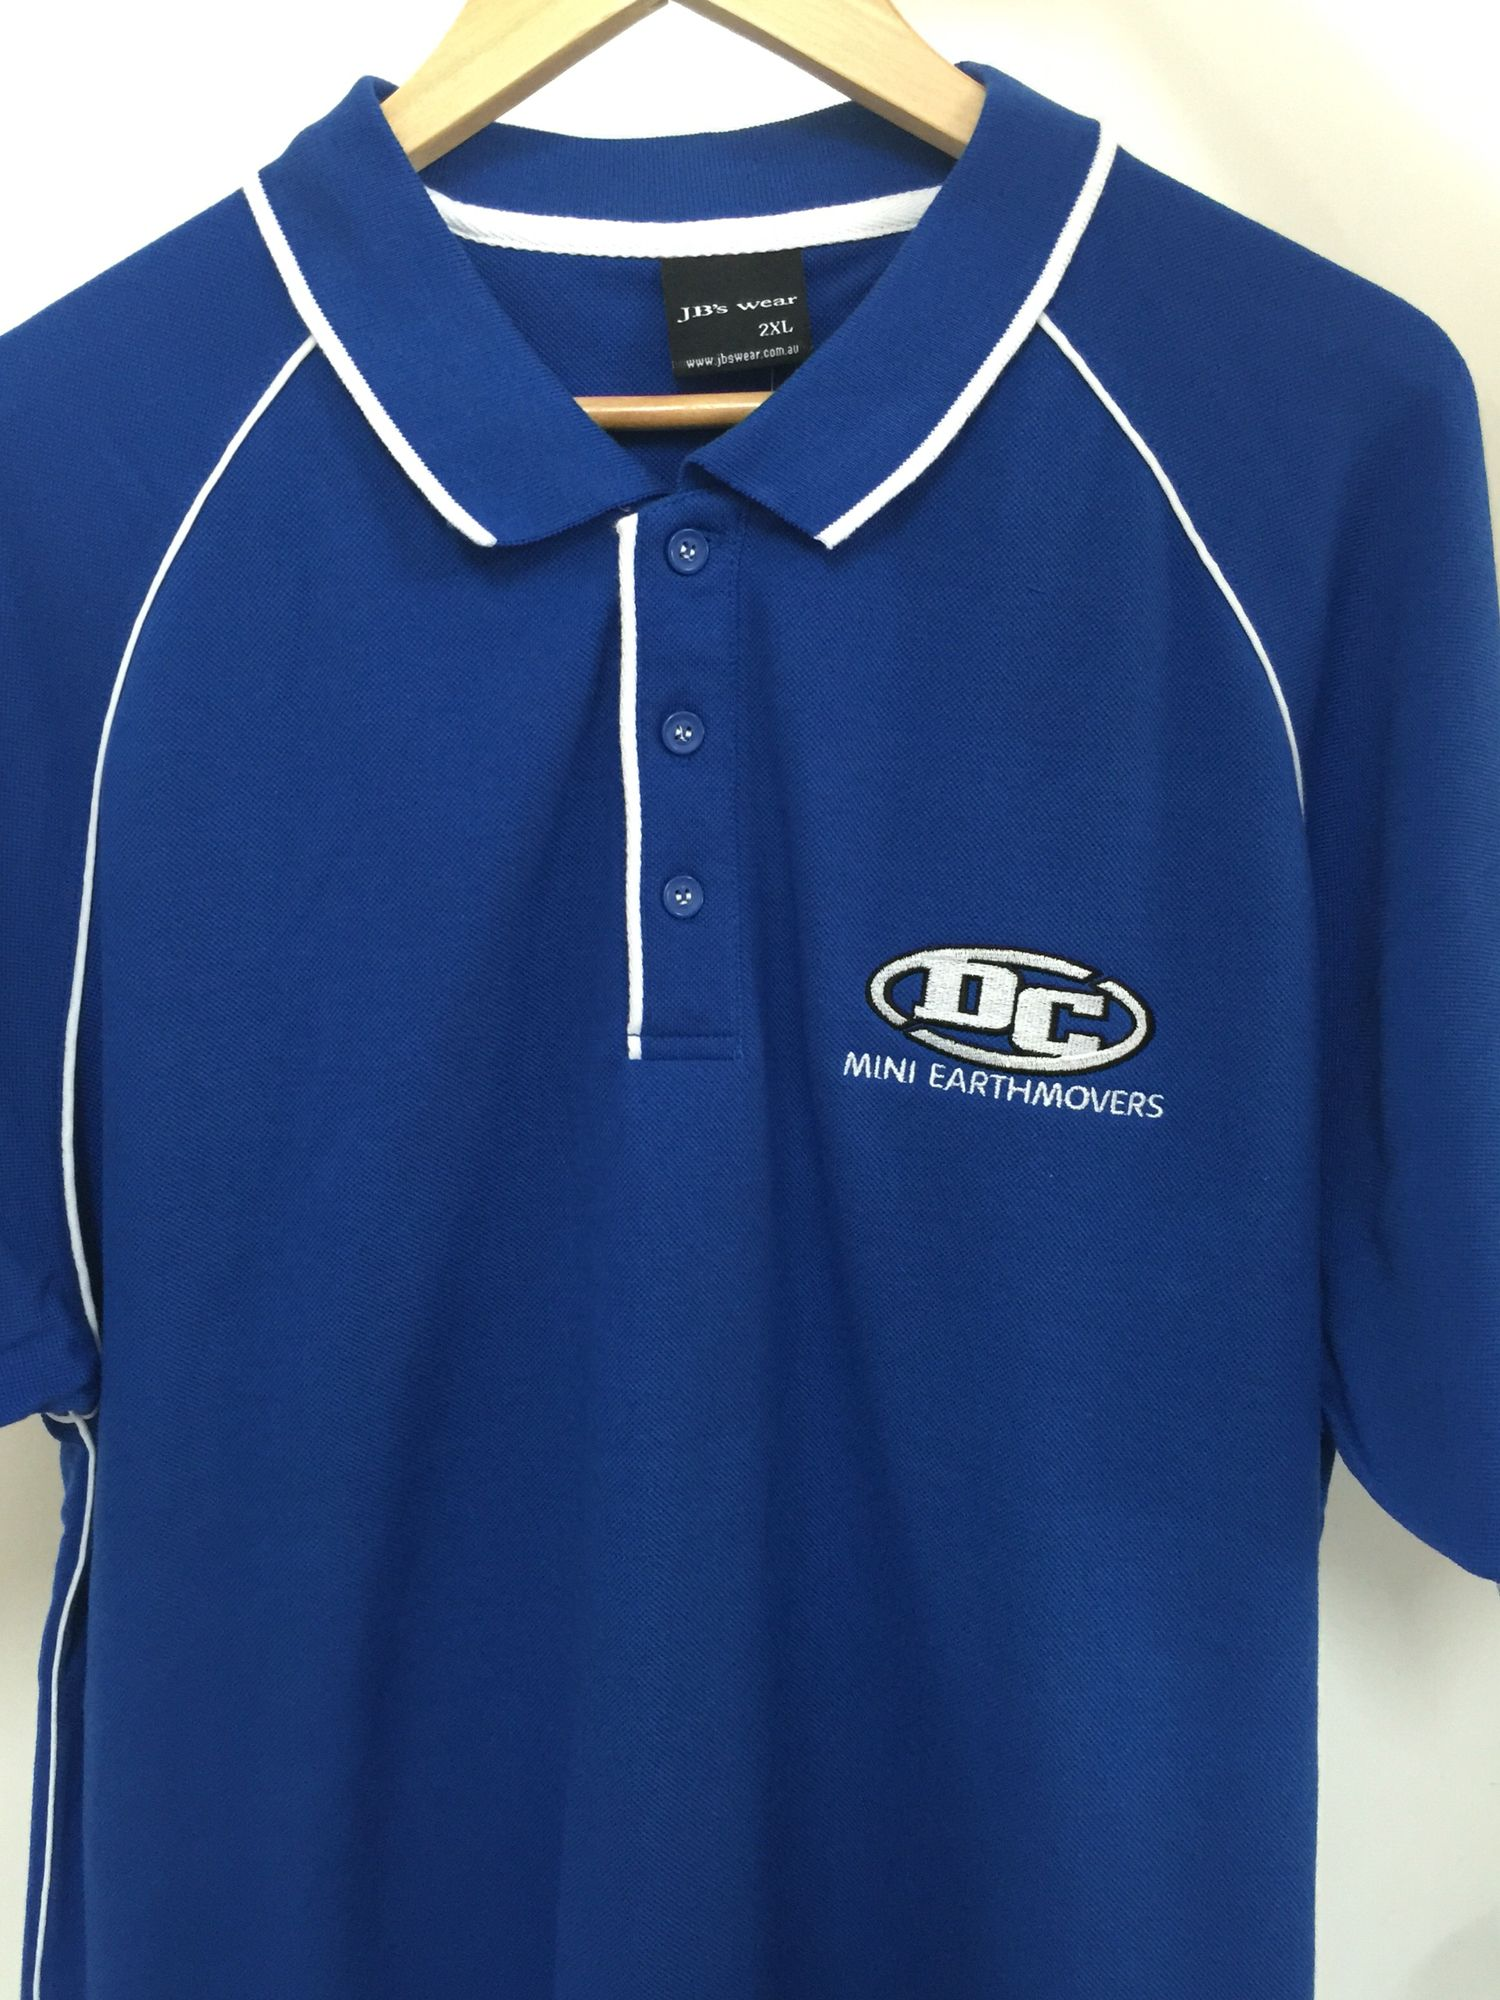 Workwear Polo Shirts With Logo Jubilee Embroidery Perth Uniforms